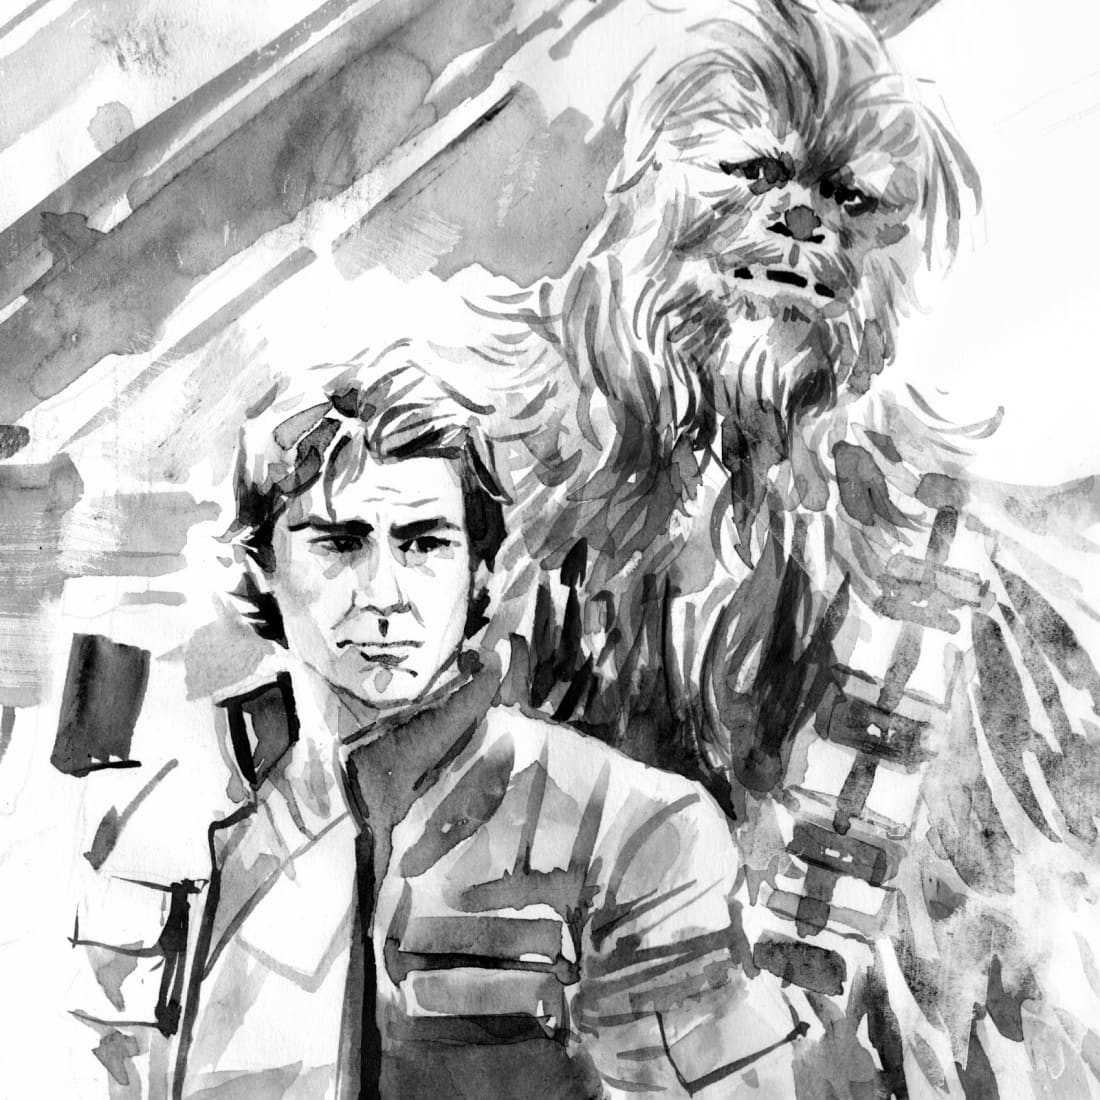 32419e980 This talented, traditional comic artist gives classic Star Wars characters  the graphic novel treatment in a series of stunning watercolor illustrations .